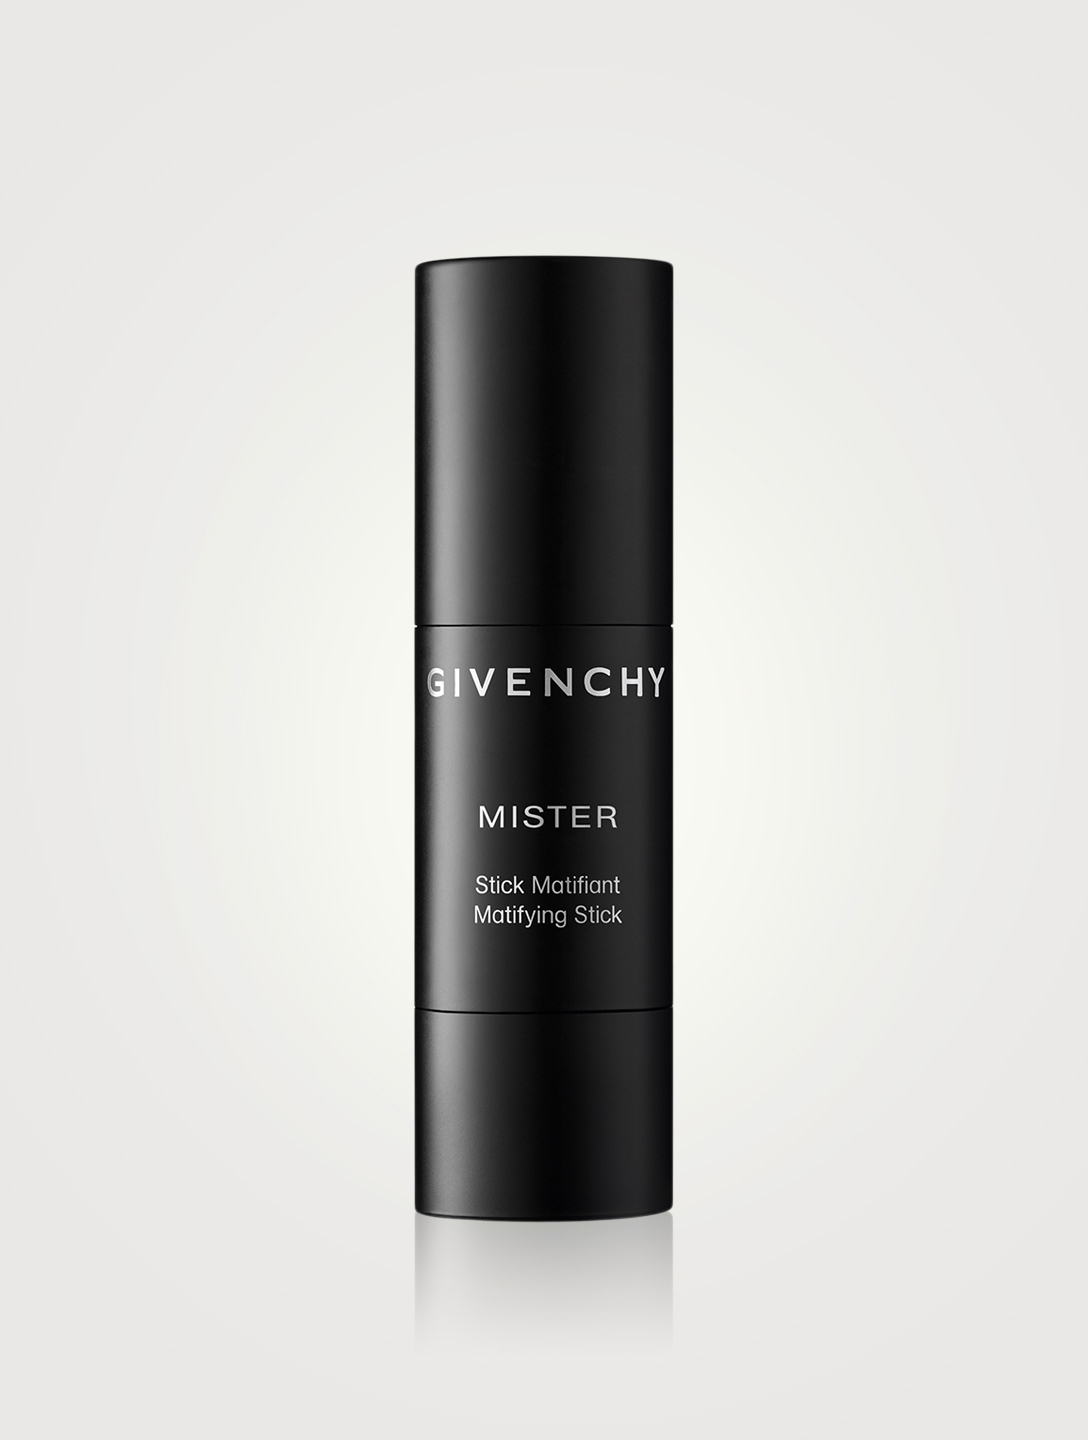 GIVENCHY Mister Matifying Stick Beauty